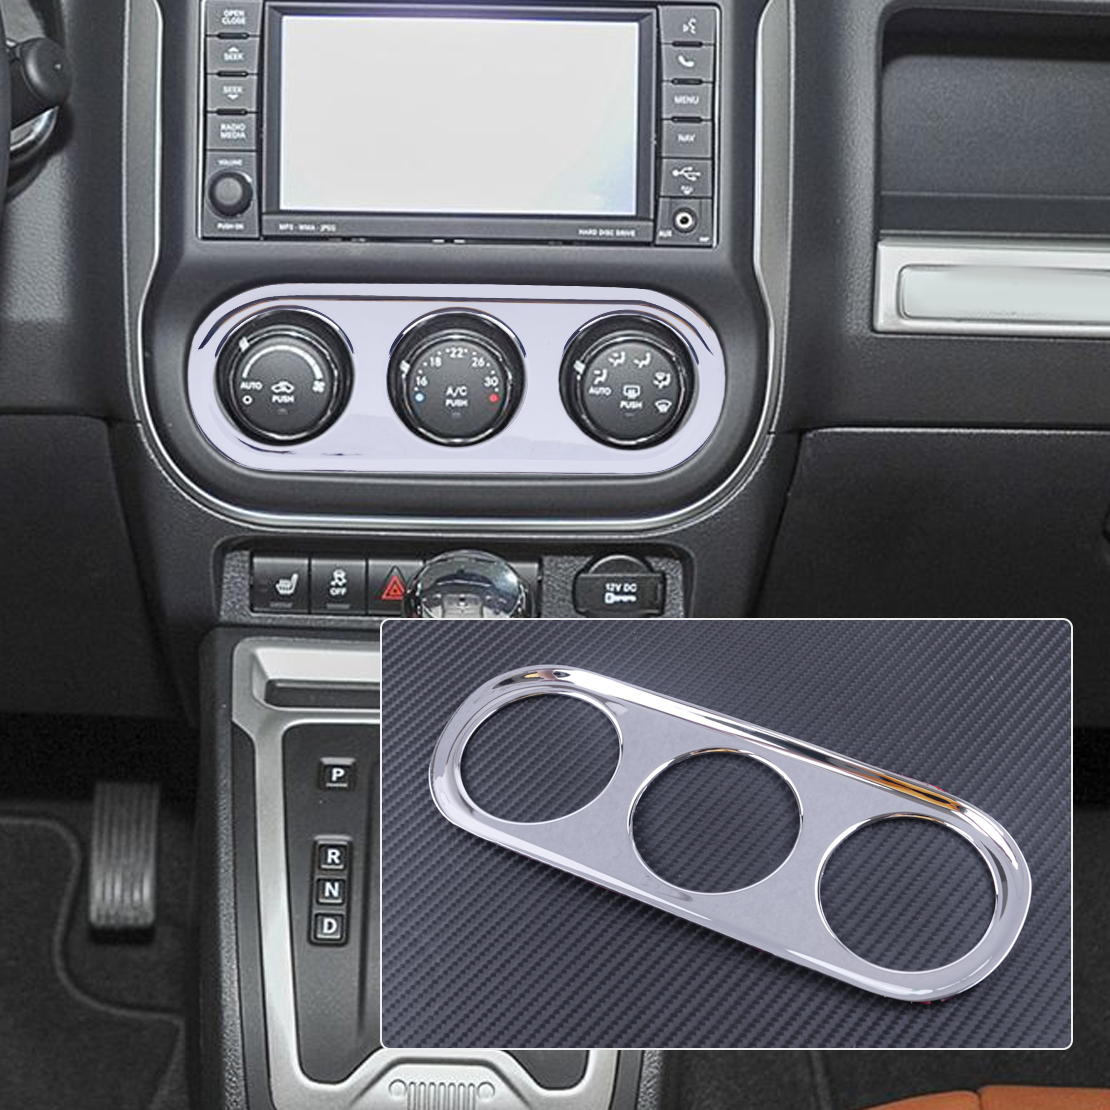 DWCX ABS <font><b>Chrome</b></font> Car Air Condition Adjust Switch Button Control Knob Cover Frame Trim Sticker Fit For <font><b>Jeep</b></font> <font><b>Compass</b></font> image